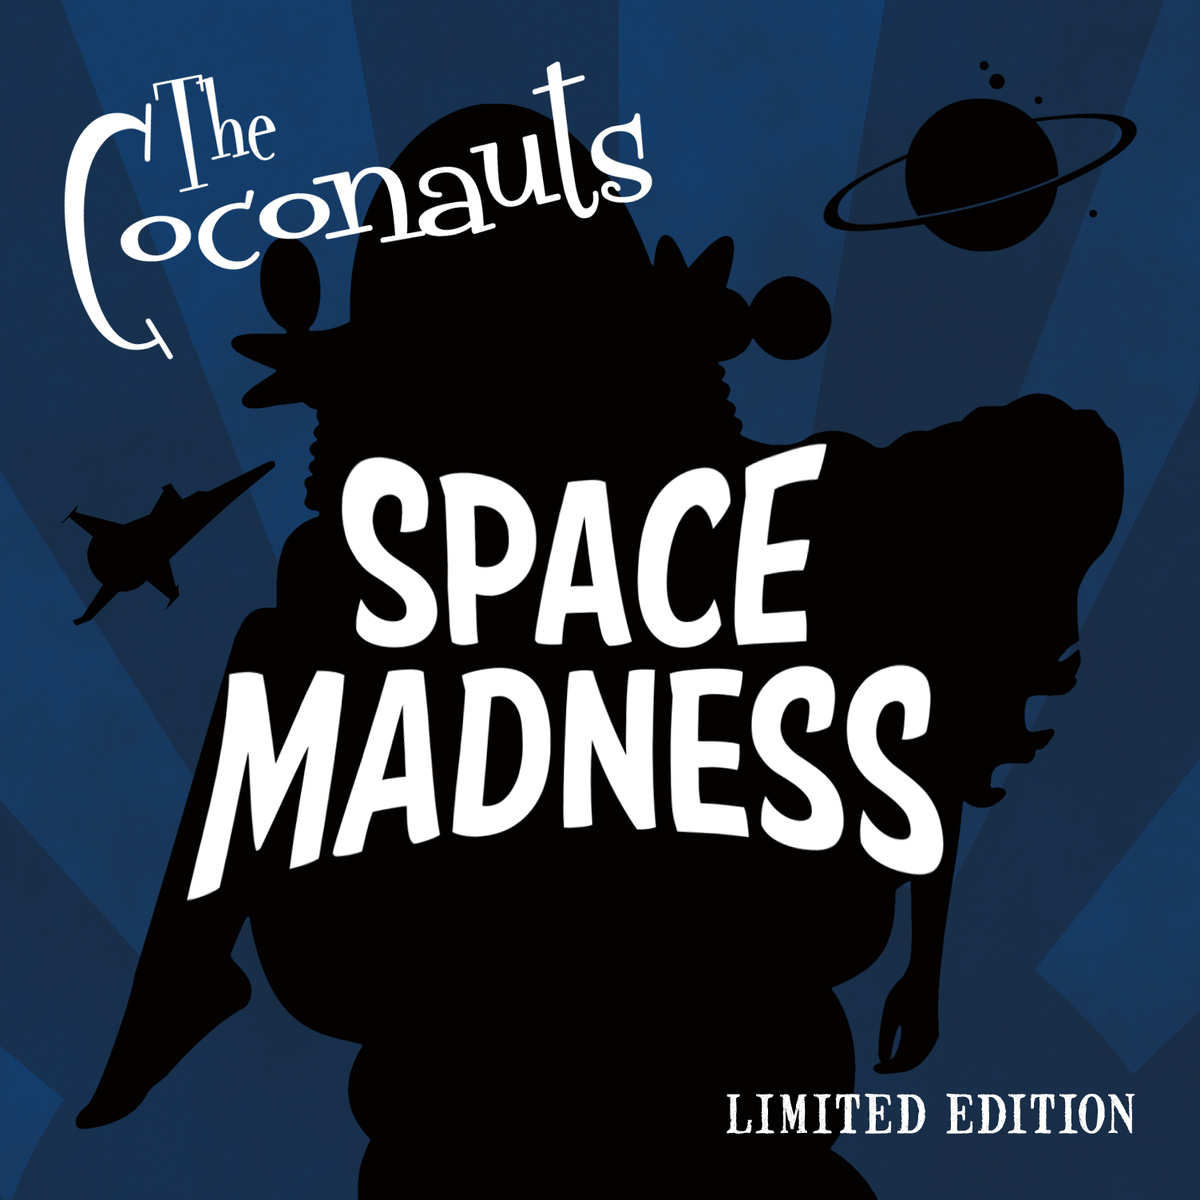 The Coconauts - Space Madness